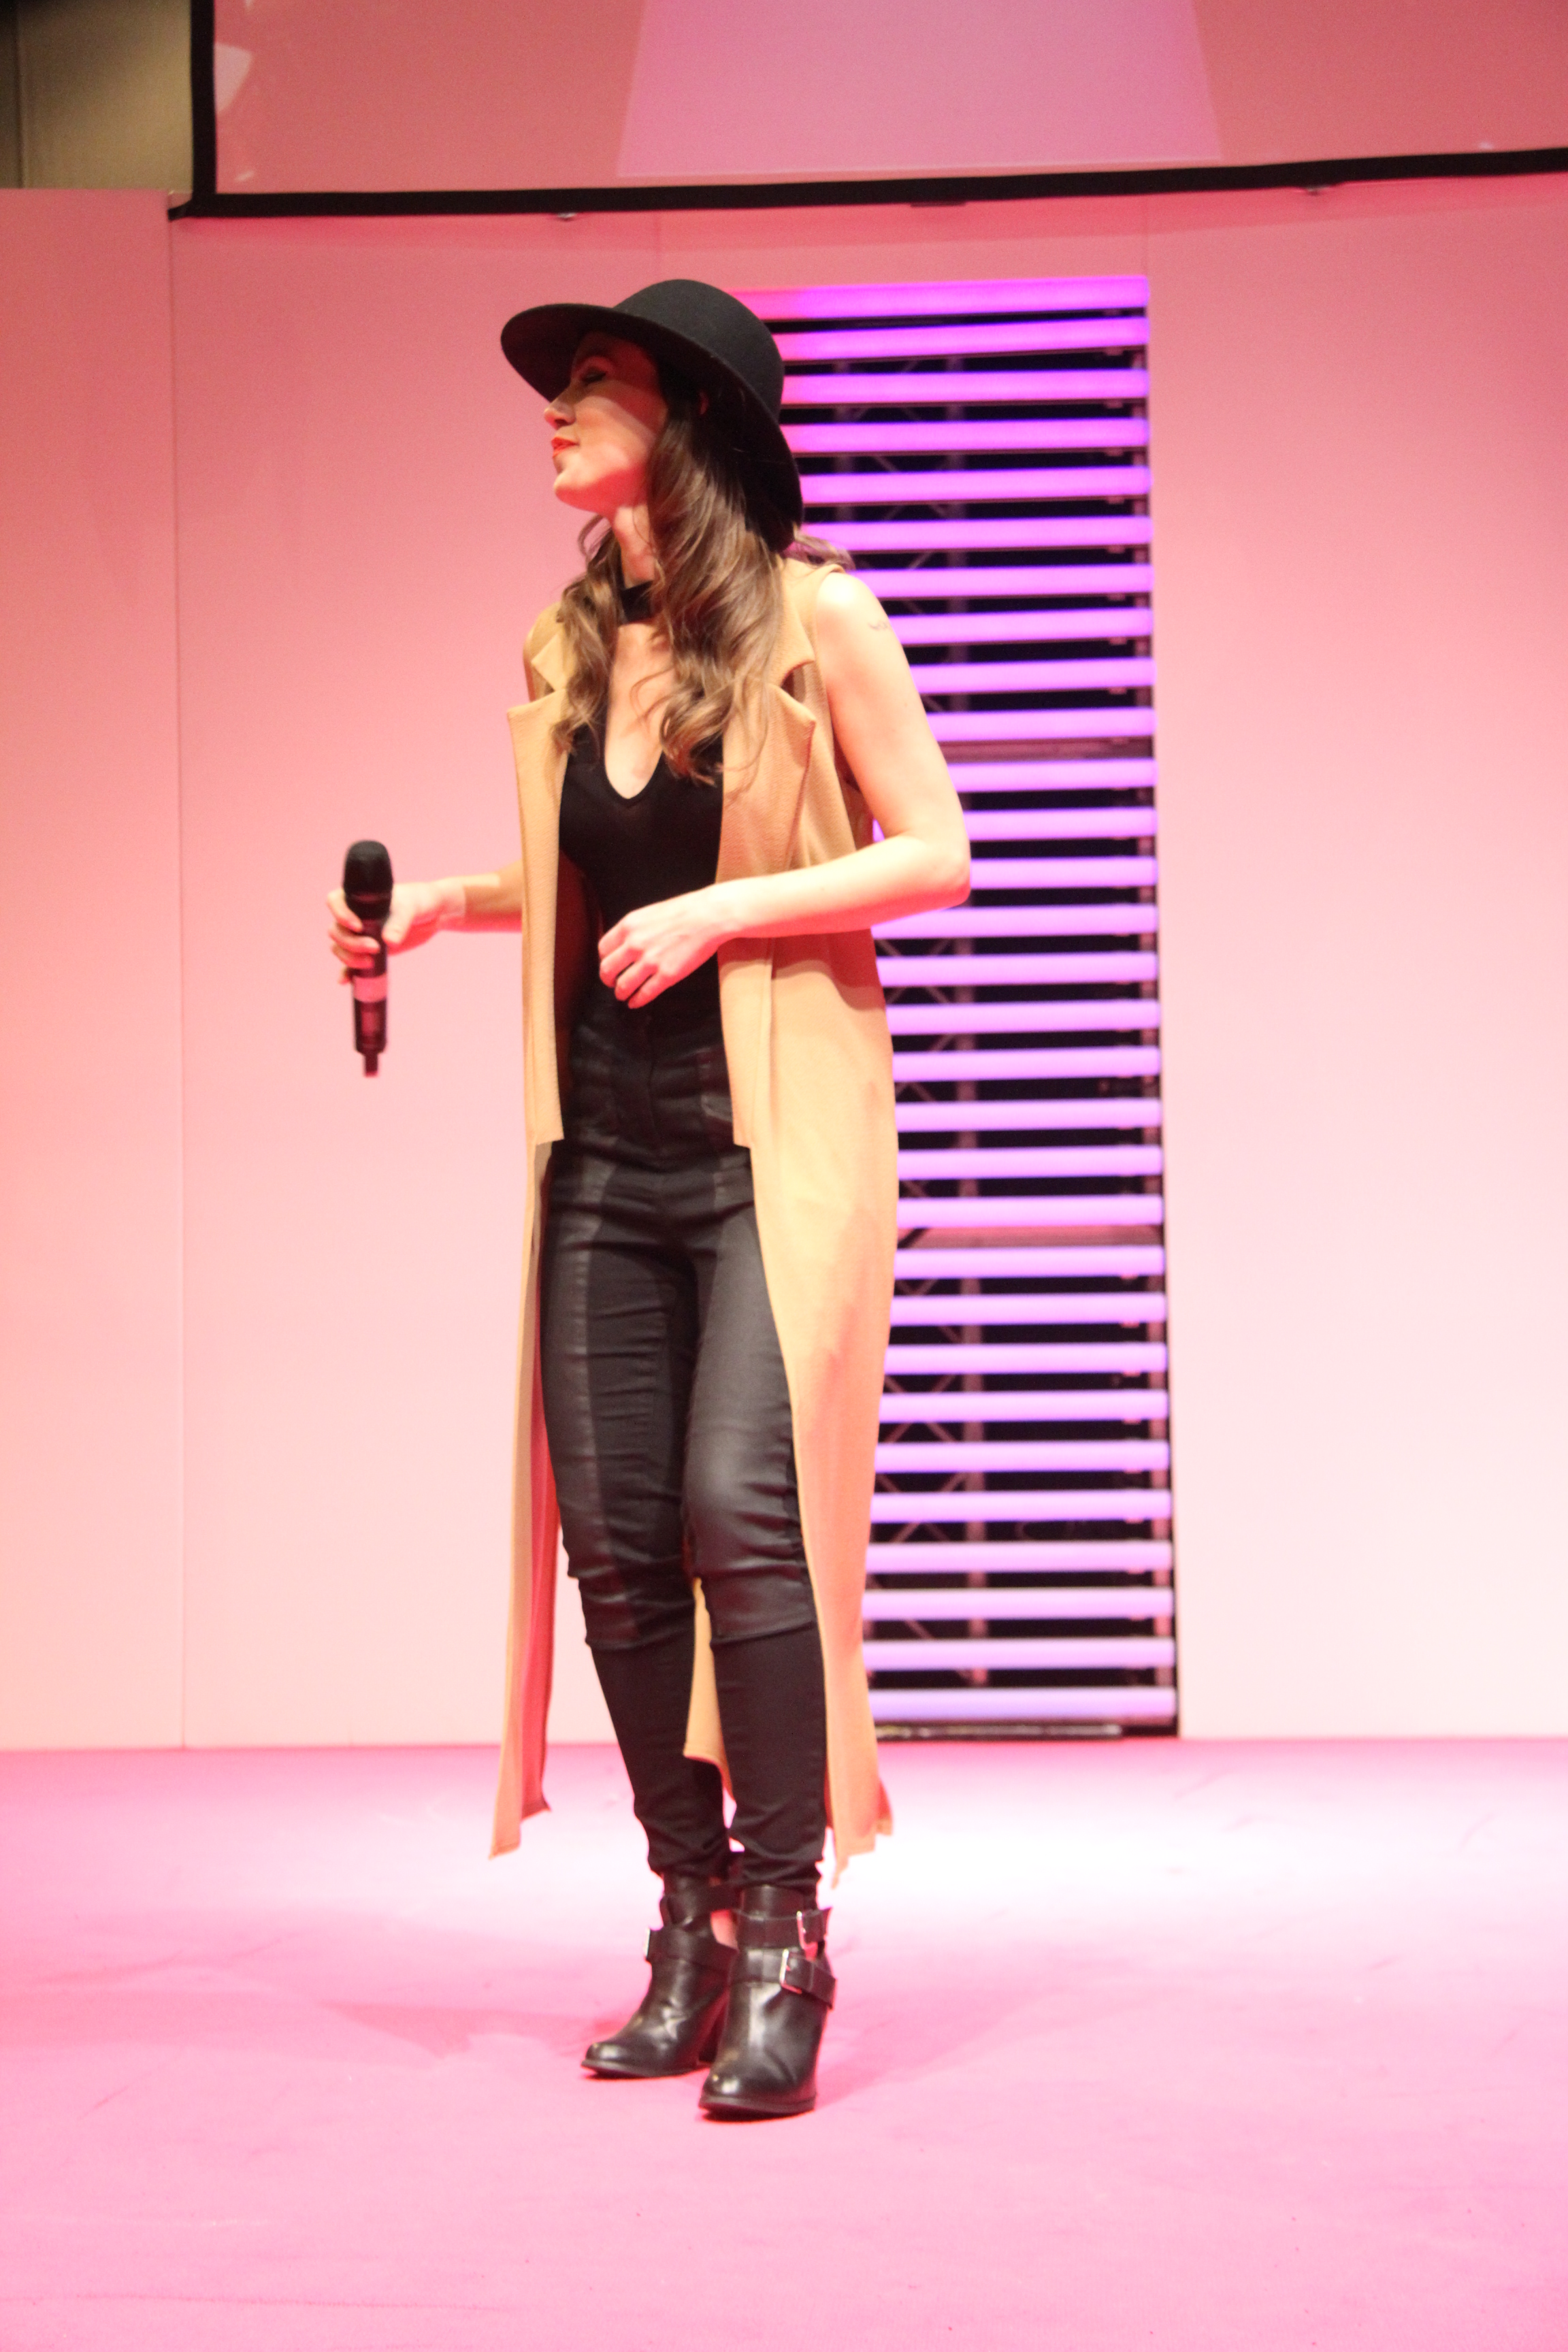 Claire Rossi performing at the SECC Glasgow